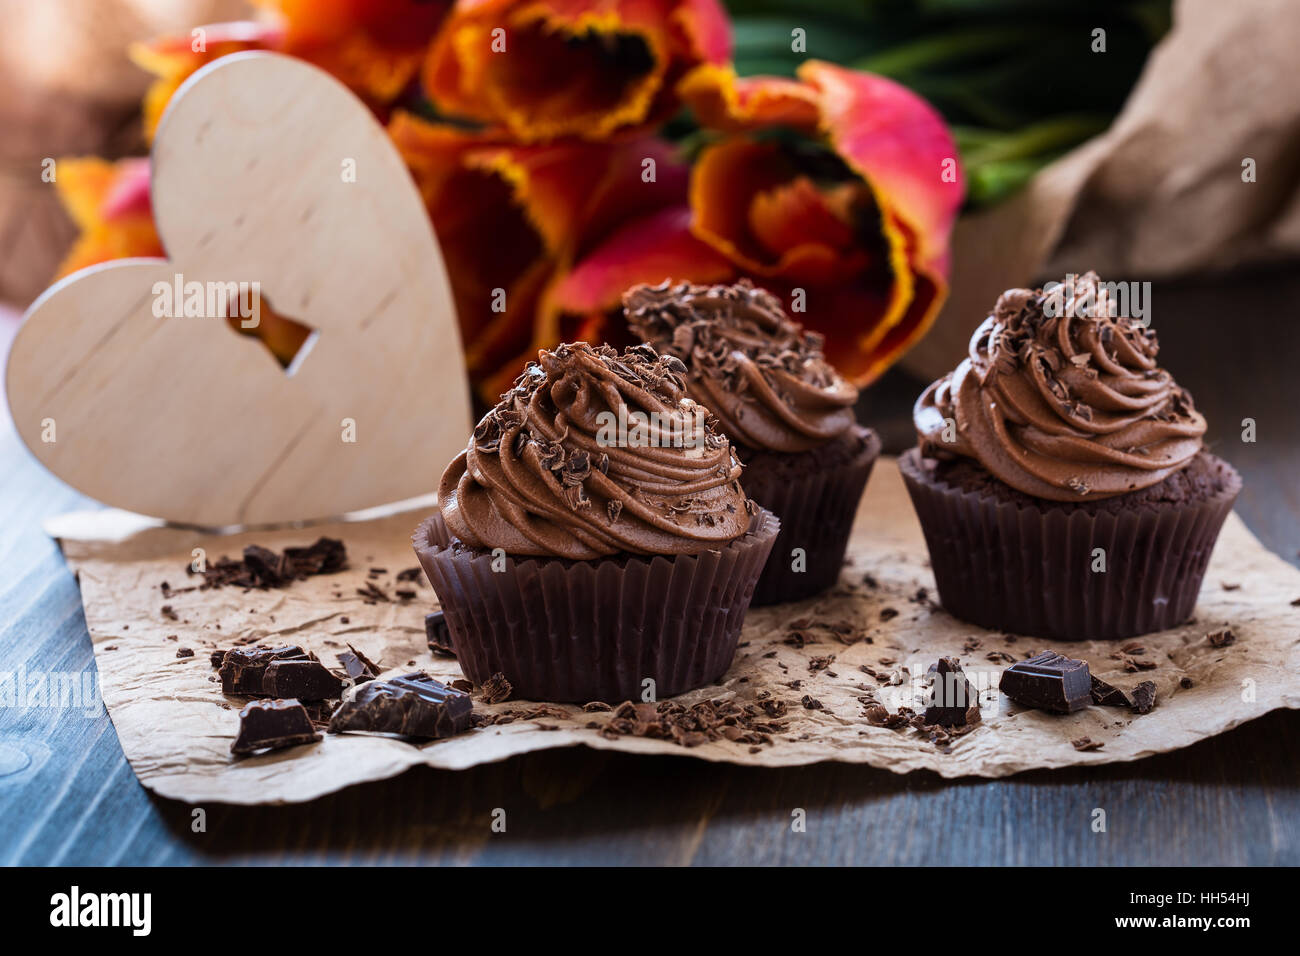 Delicious Mothers day  chocolate cupcakes  with spring tulips and wooden heart shape - Stock Image